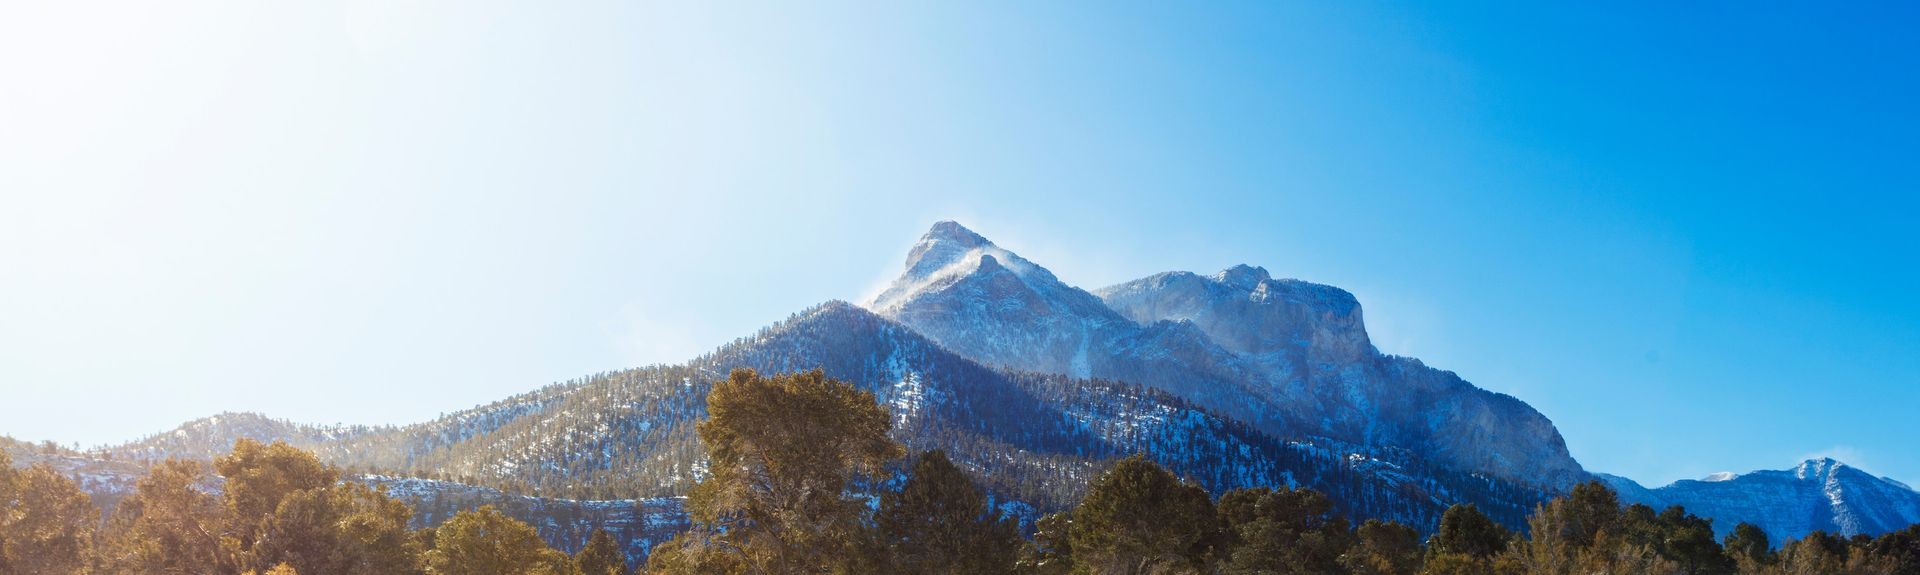 Mount Charleston, Las Vegas, Nevada, Estados Unidos